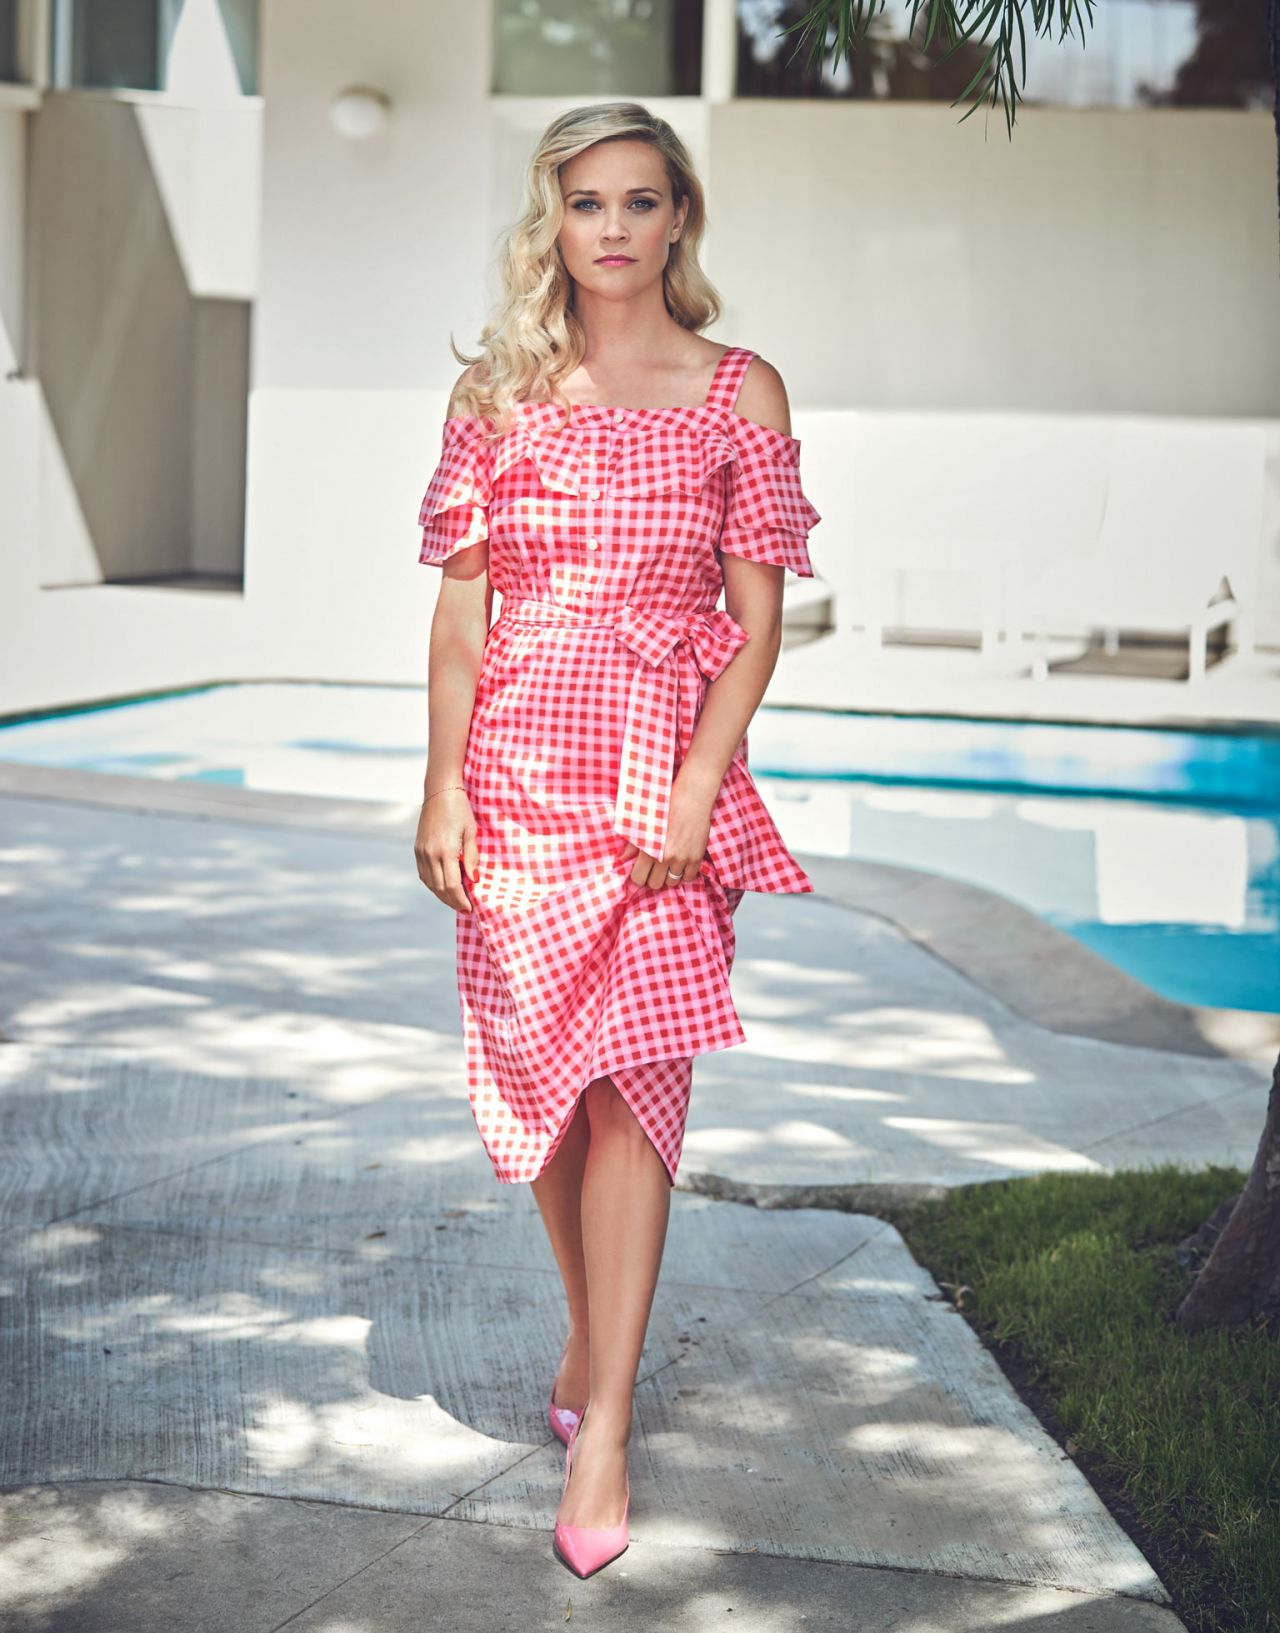 Reese witherspoon the edit magazine june 2019 cover and photos naked (71 photo), Twitter Celebrites foto